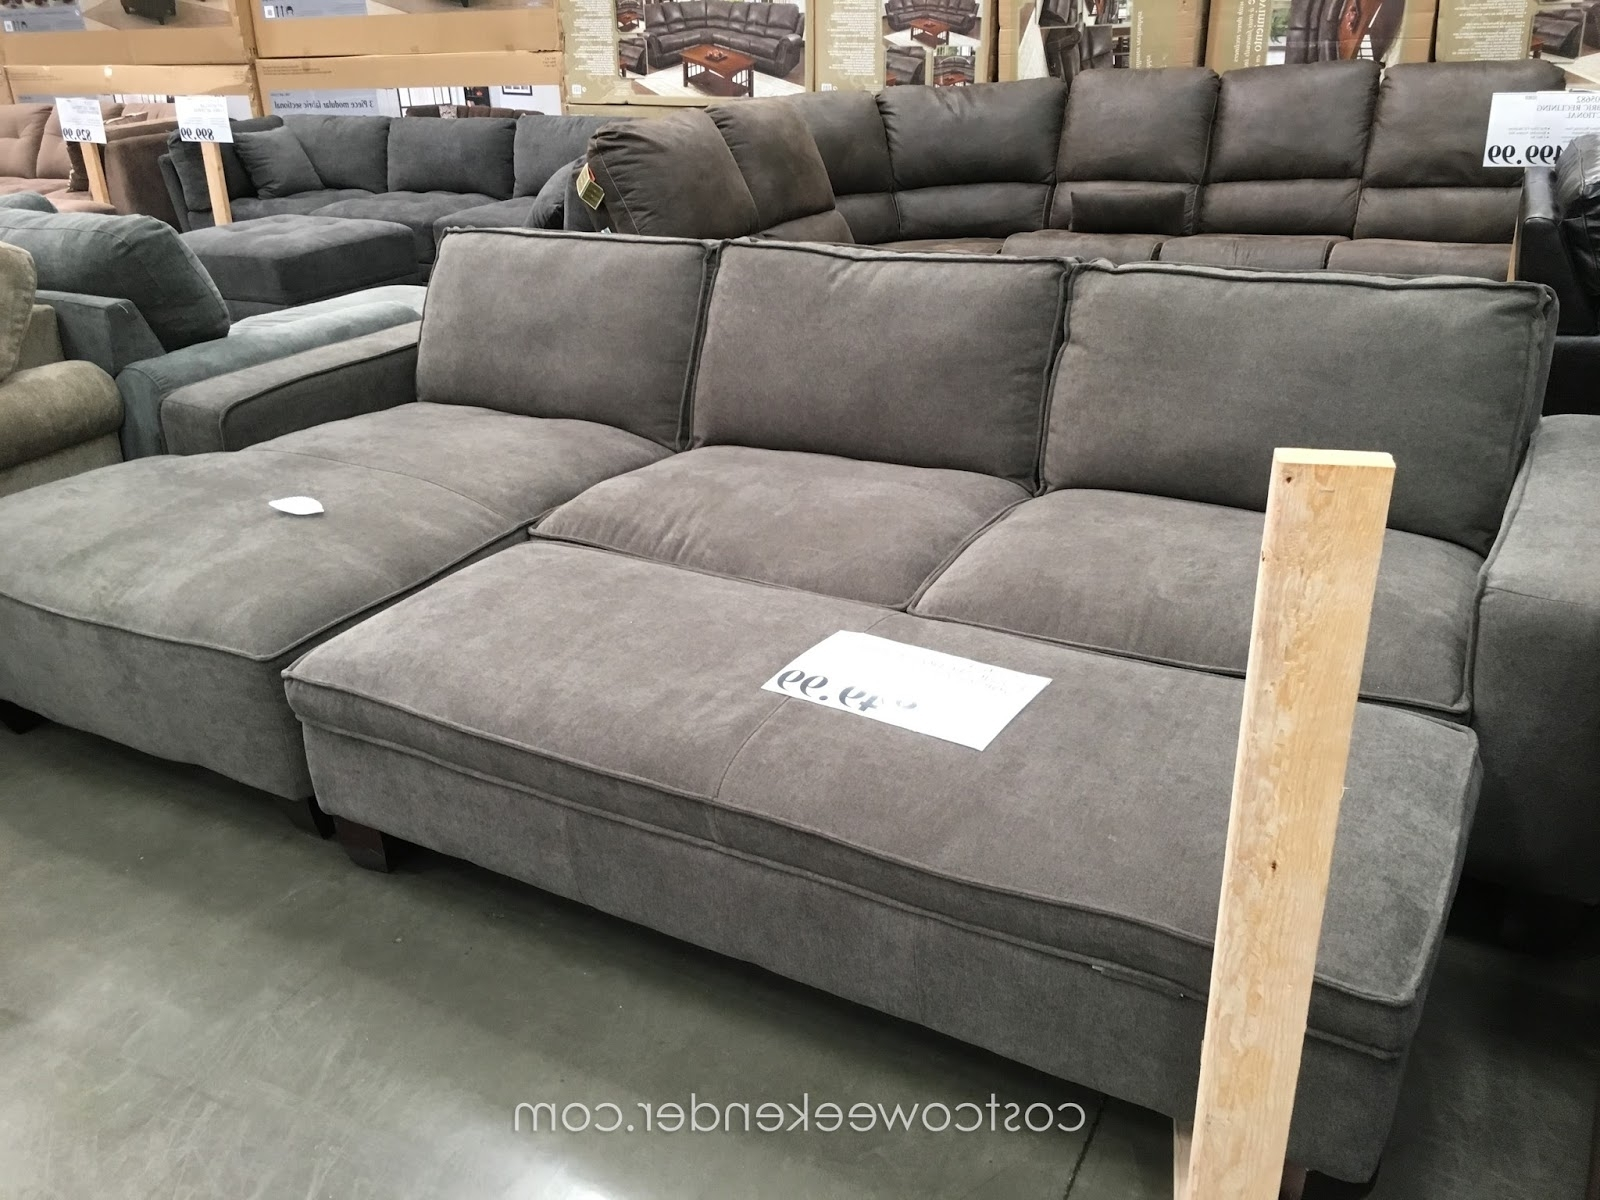 Latest Sectional Sofa Design: Sectional Sofa With Chaise And Ottoman Regarding Sofas With Chaise And Ottoman (View 6 of 15)